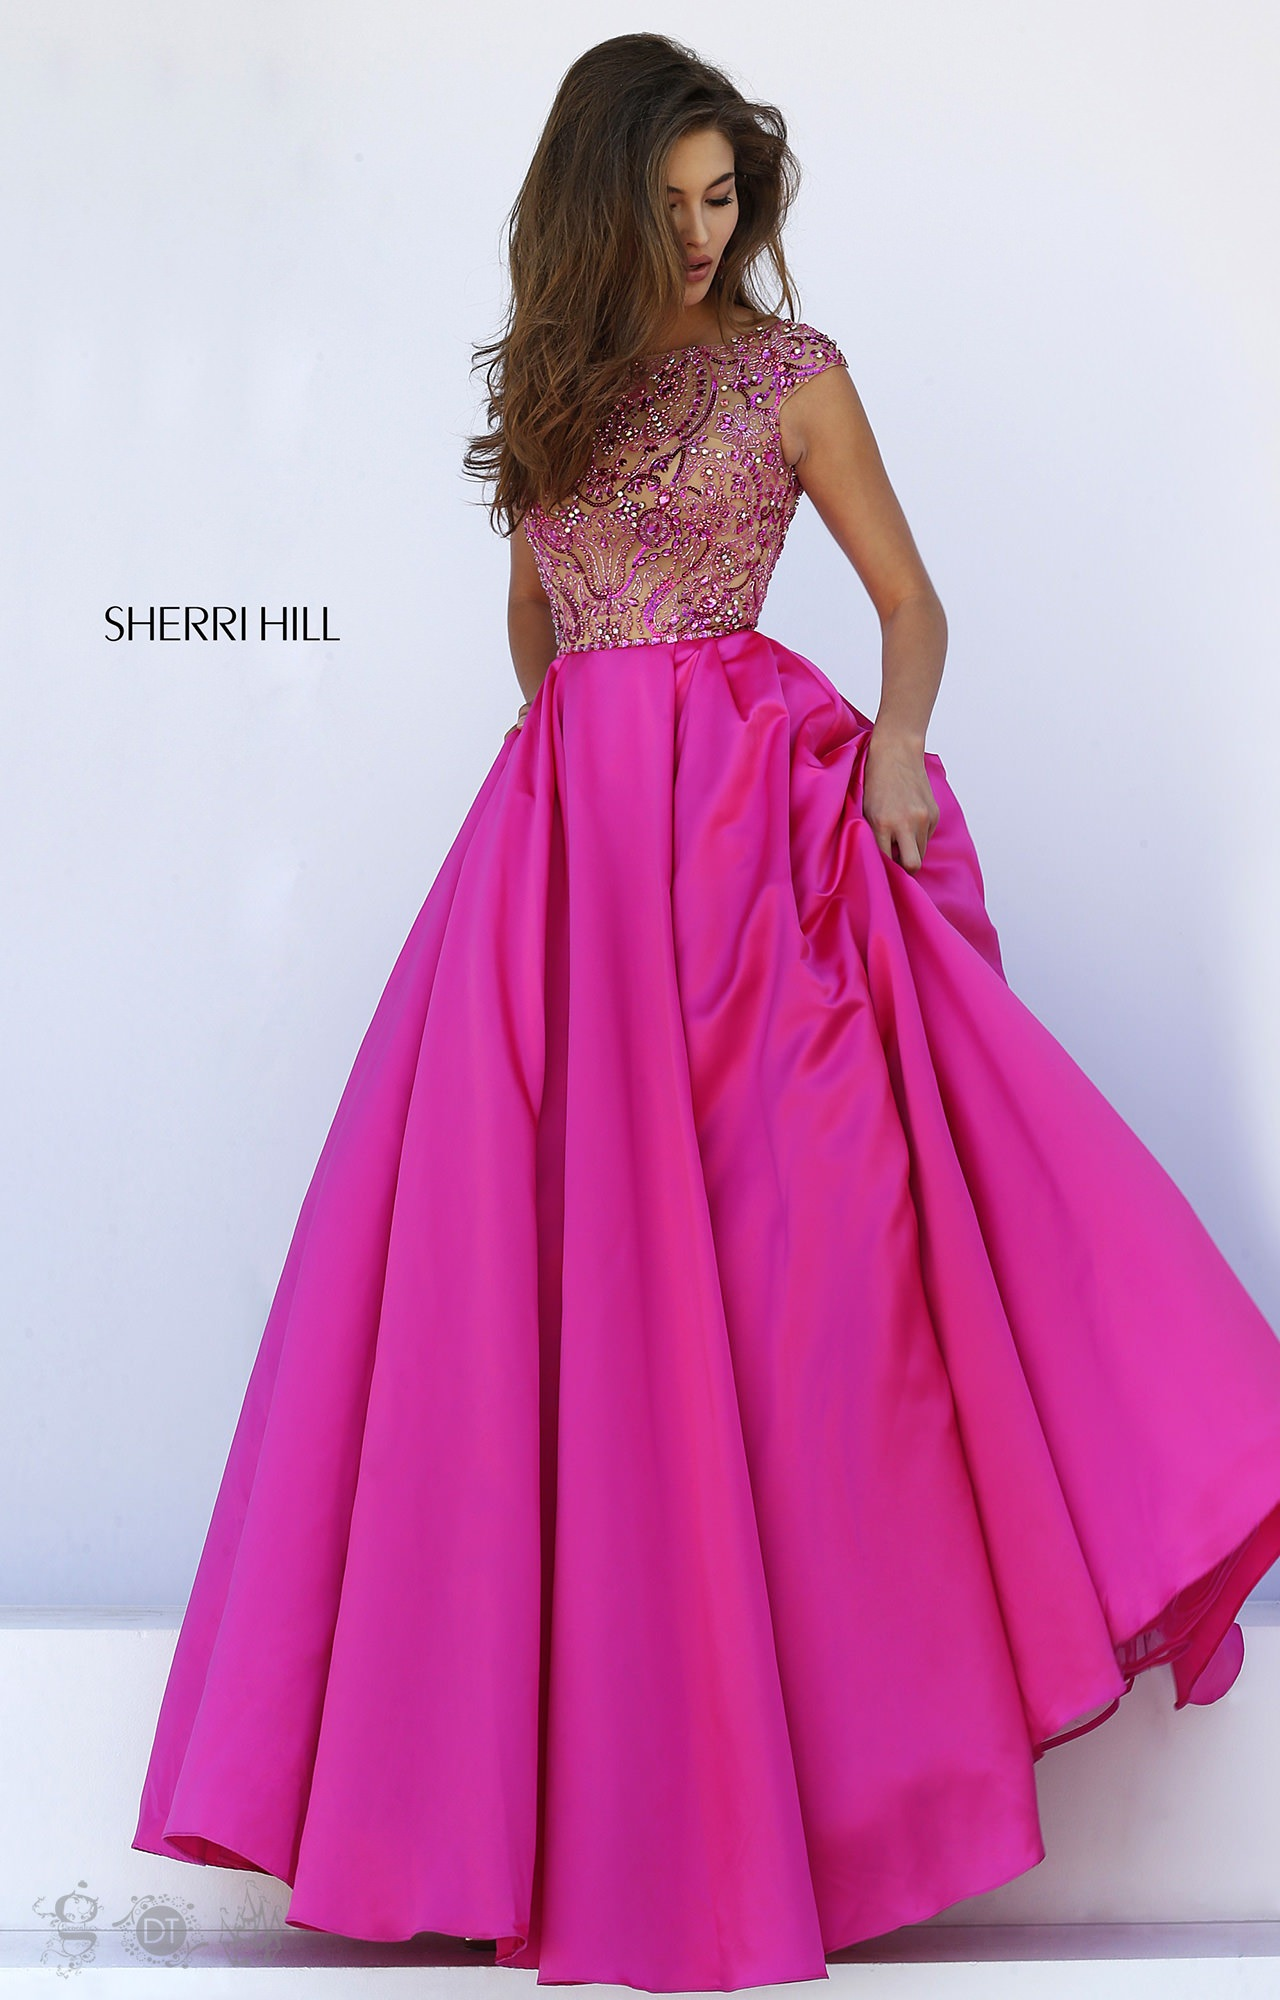 Sherri Hill 32359 - Eloise Gown Prom Dress